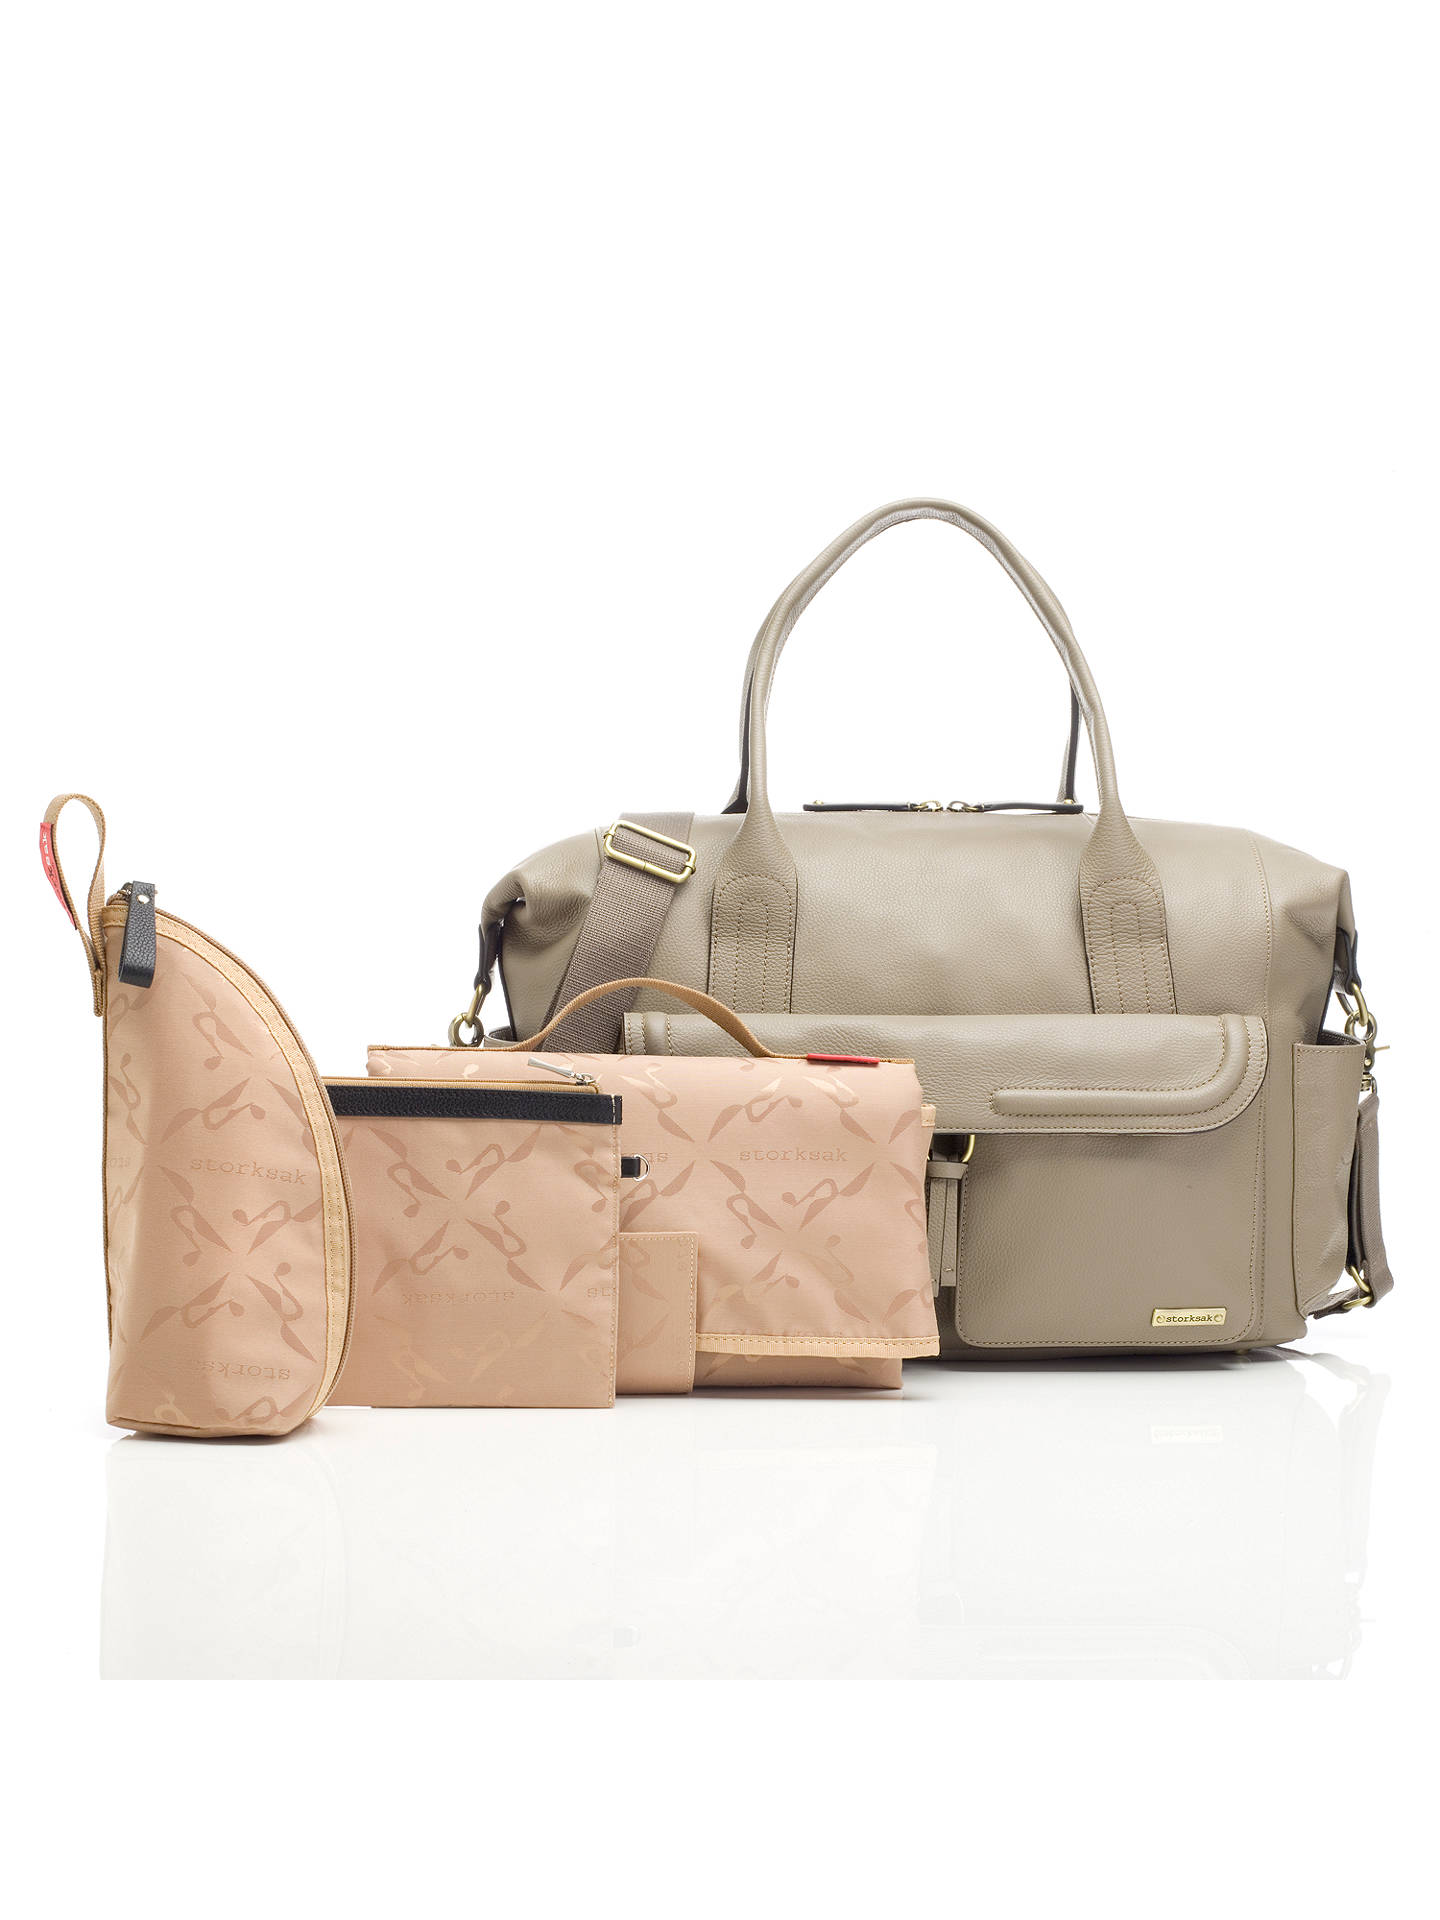 BuyStorksak Charlotte Leather Changing Bag, Clay Online at johnlewis.com